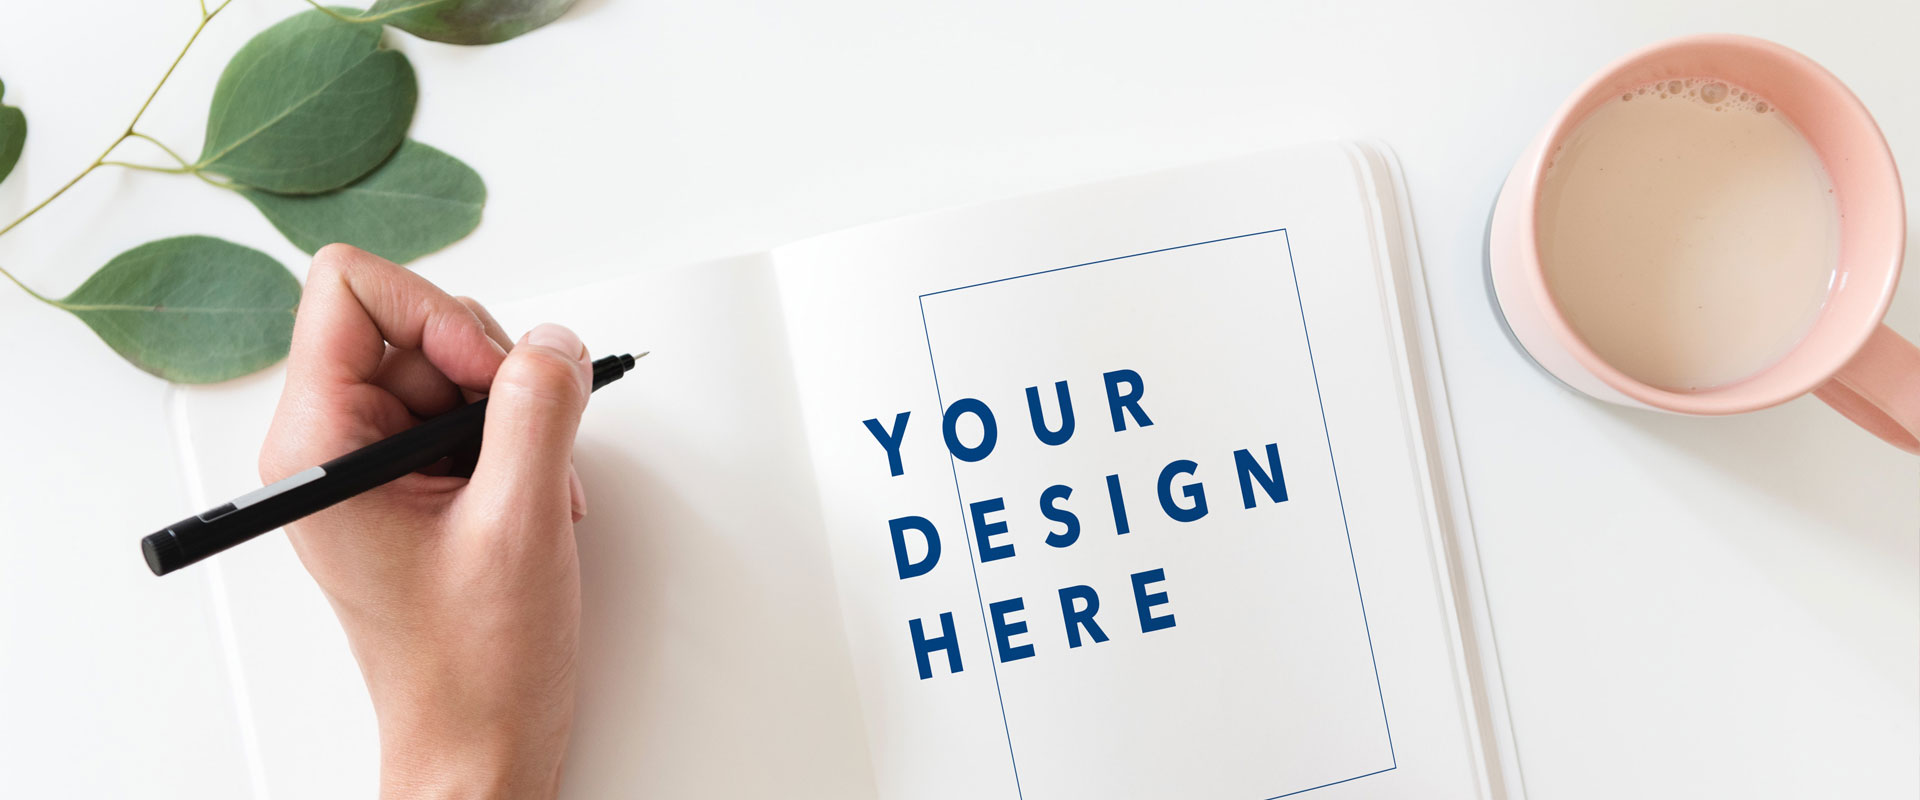 "image of hand on table with pencil and paper that reads ""Your Design Here"""